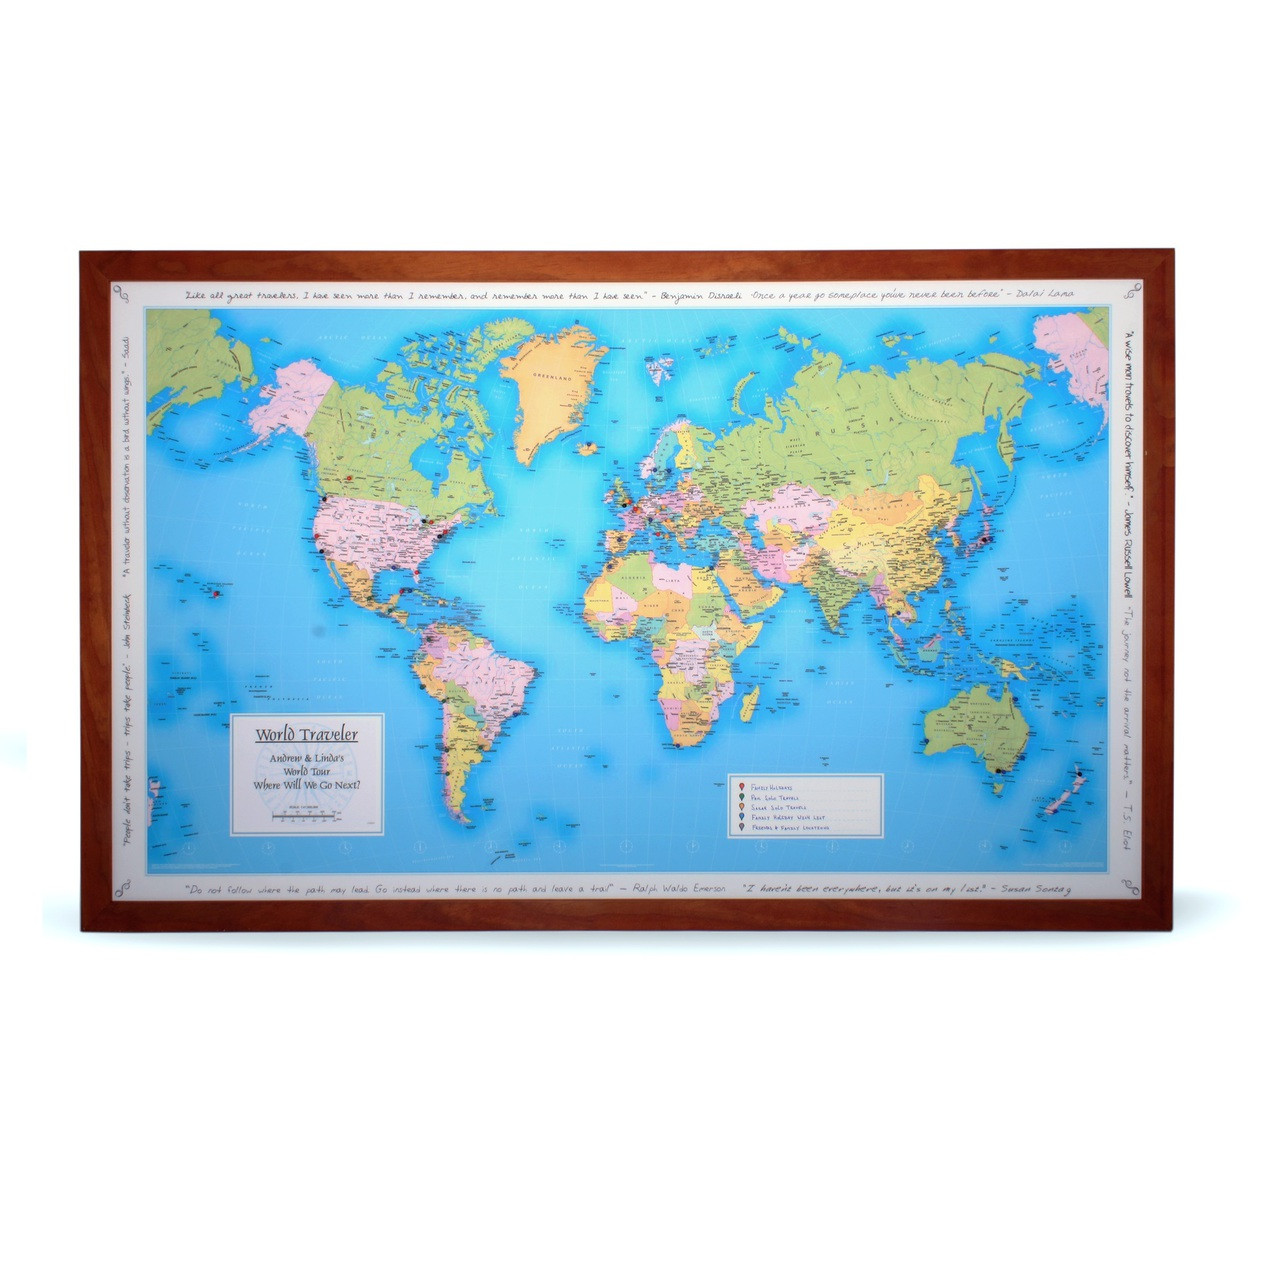 Personalized World Travel Map Framed and Ready to Hang – Personalized World Traveler Map Framed